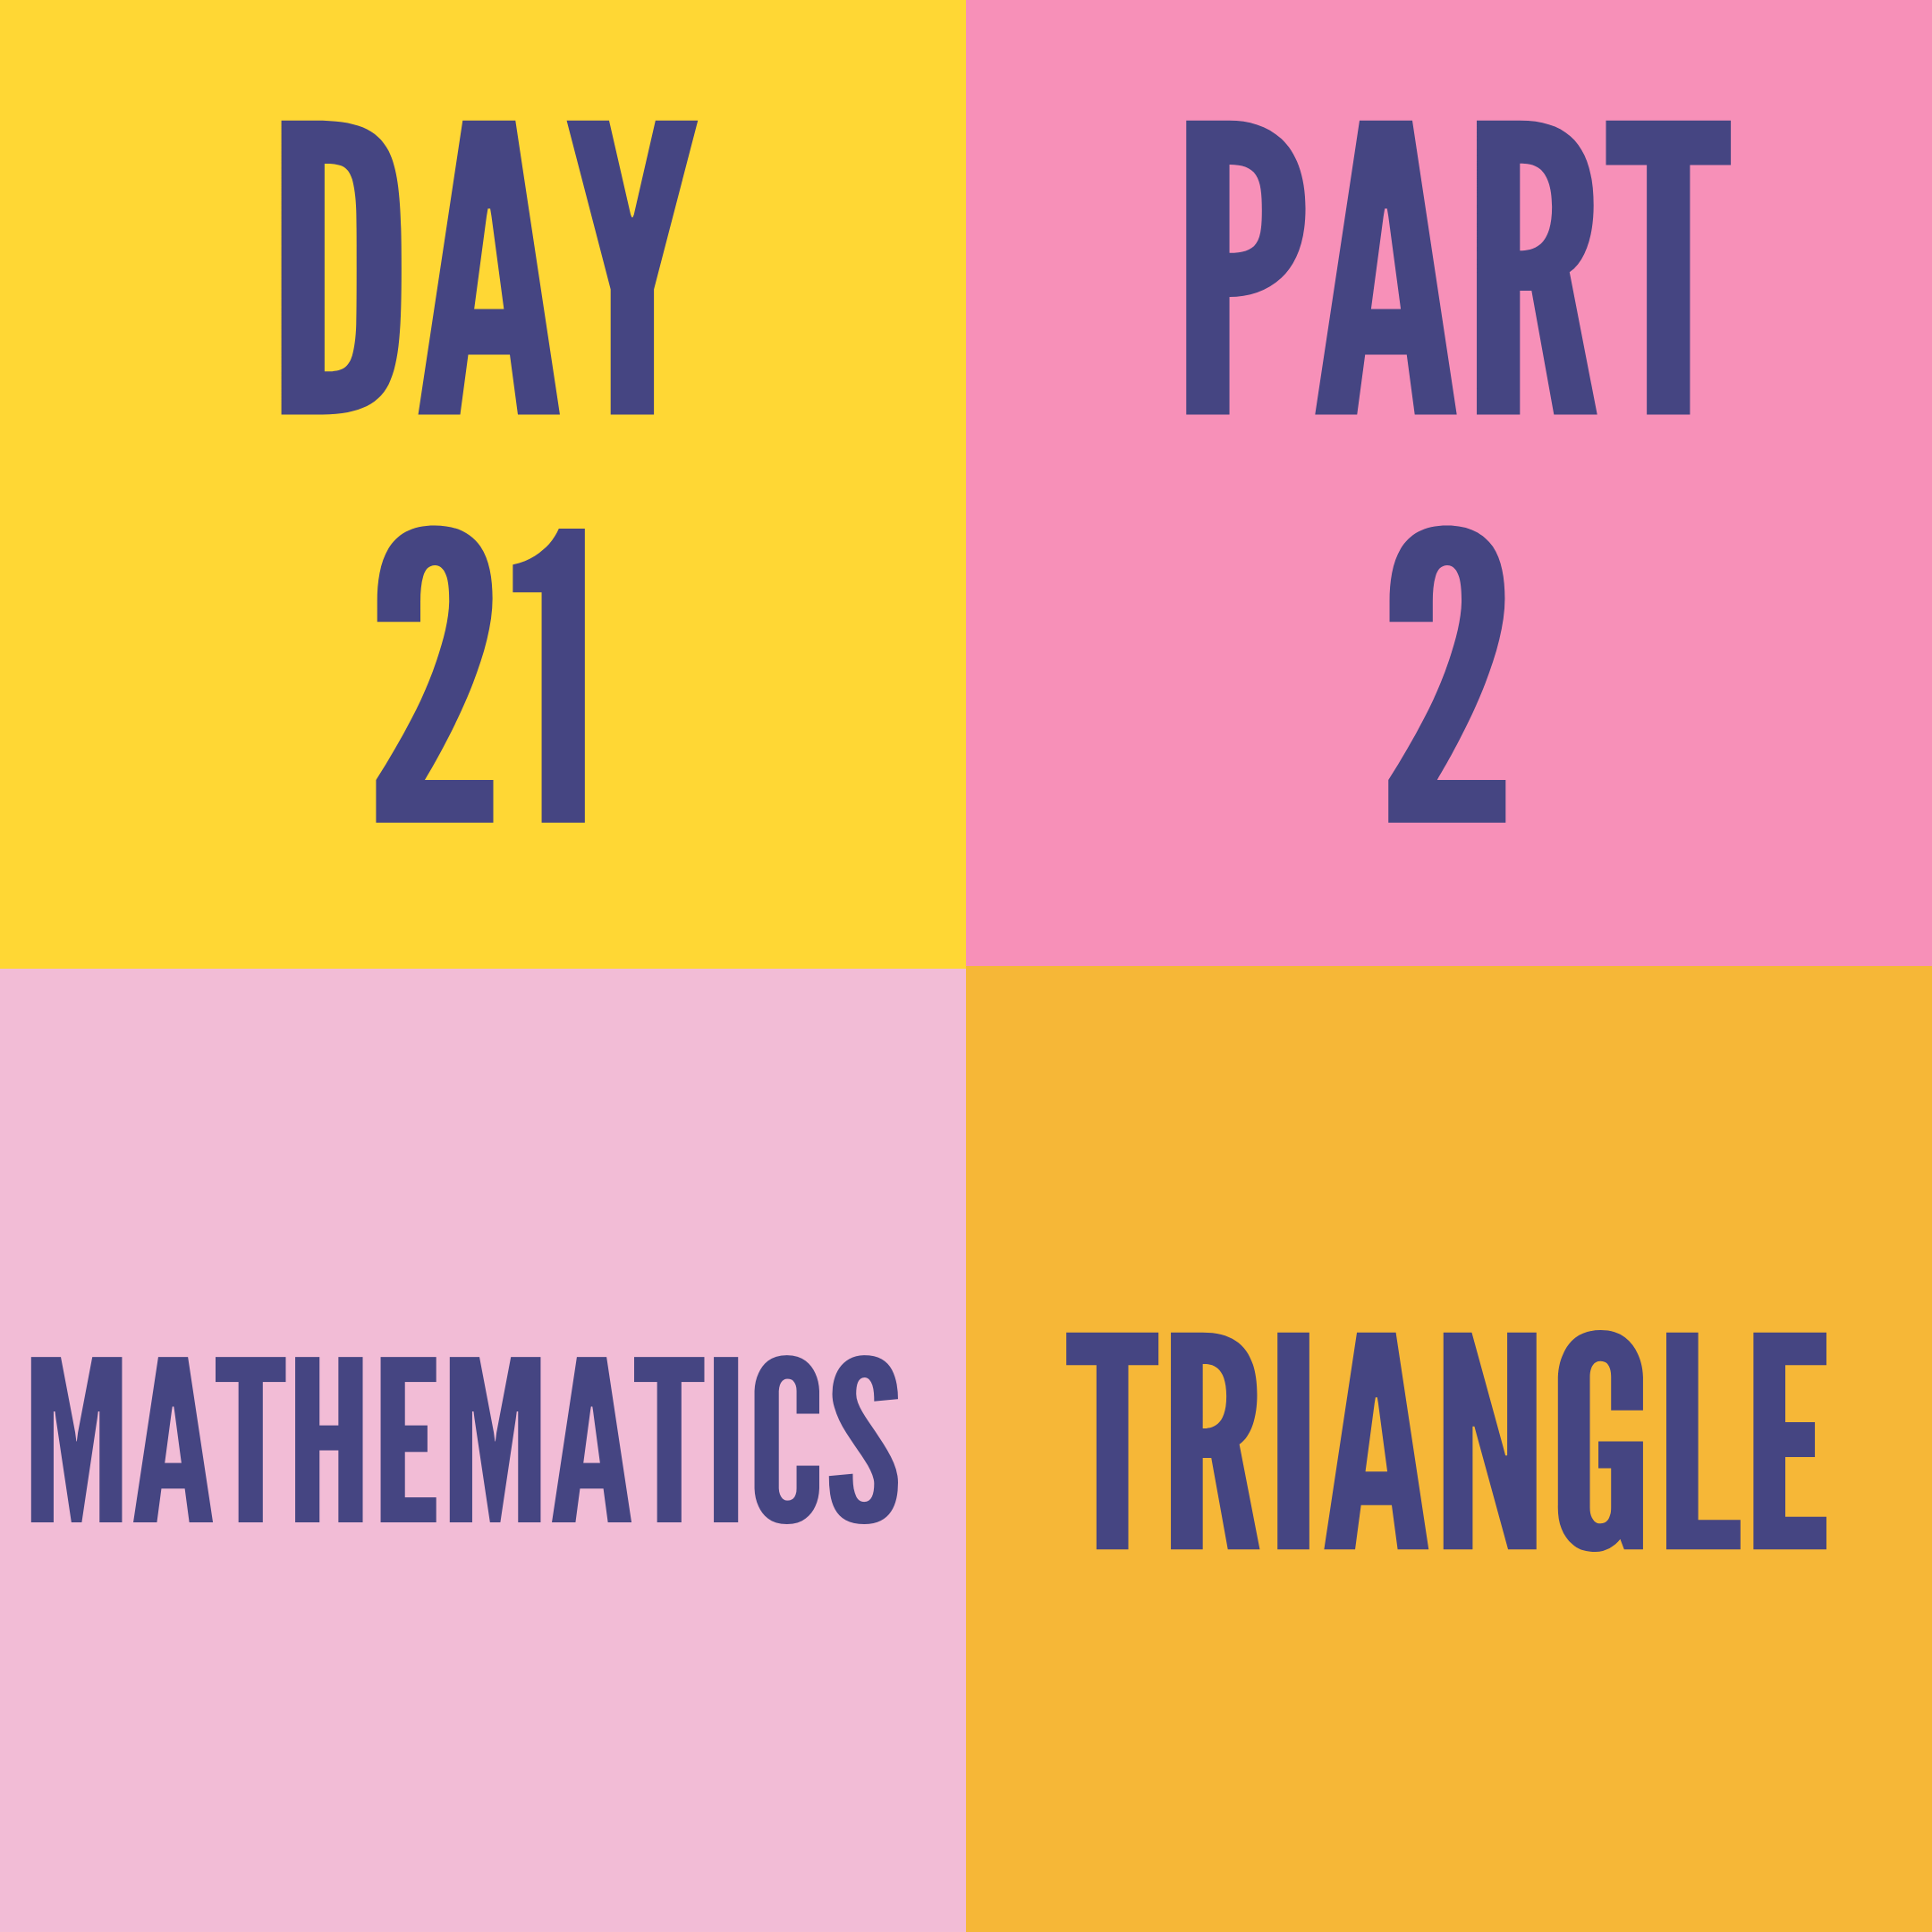 DAY-21 PART-2 TRIANGLE